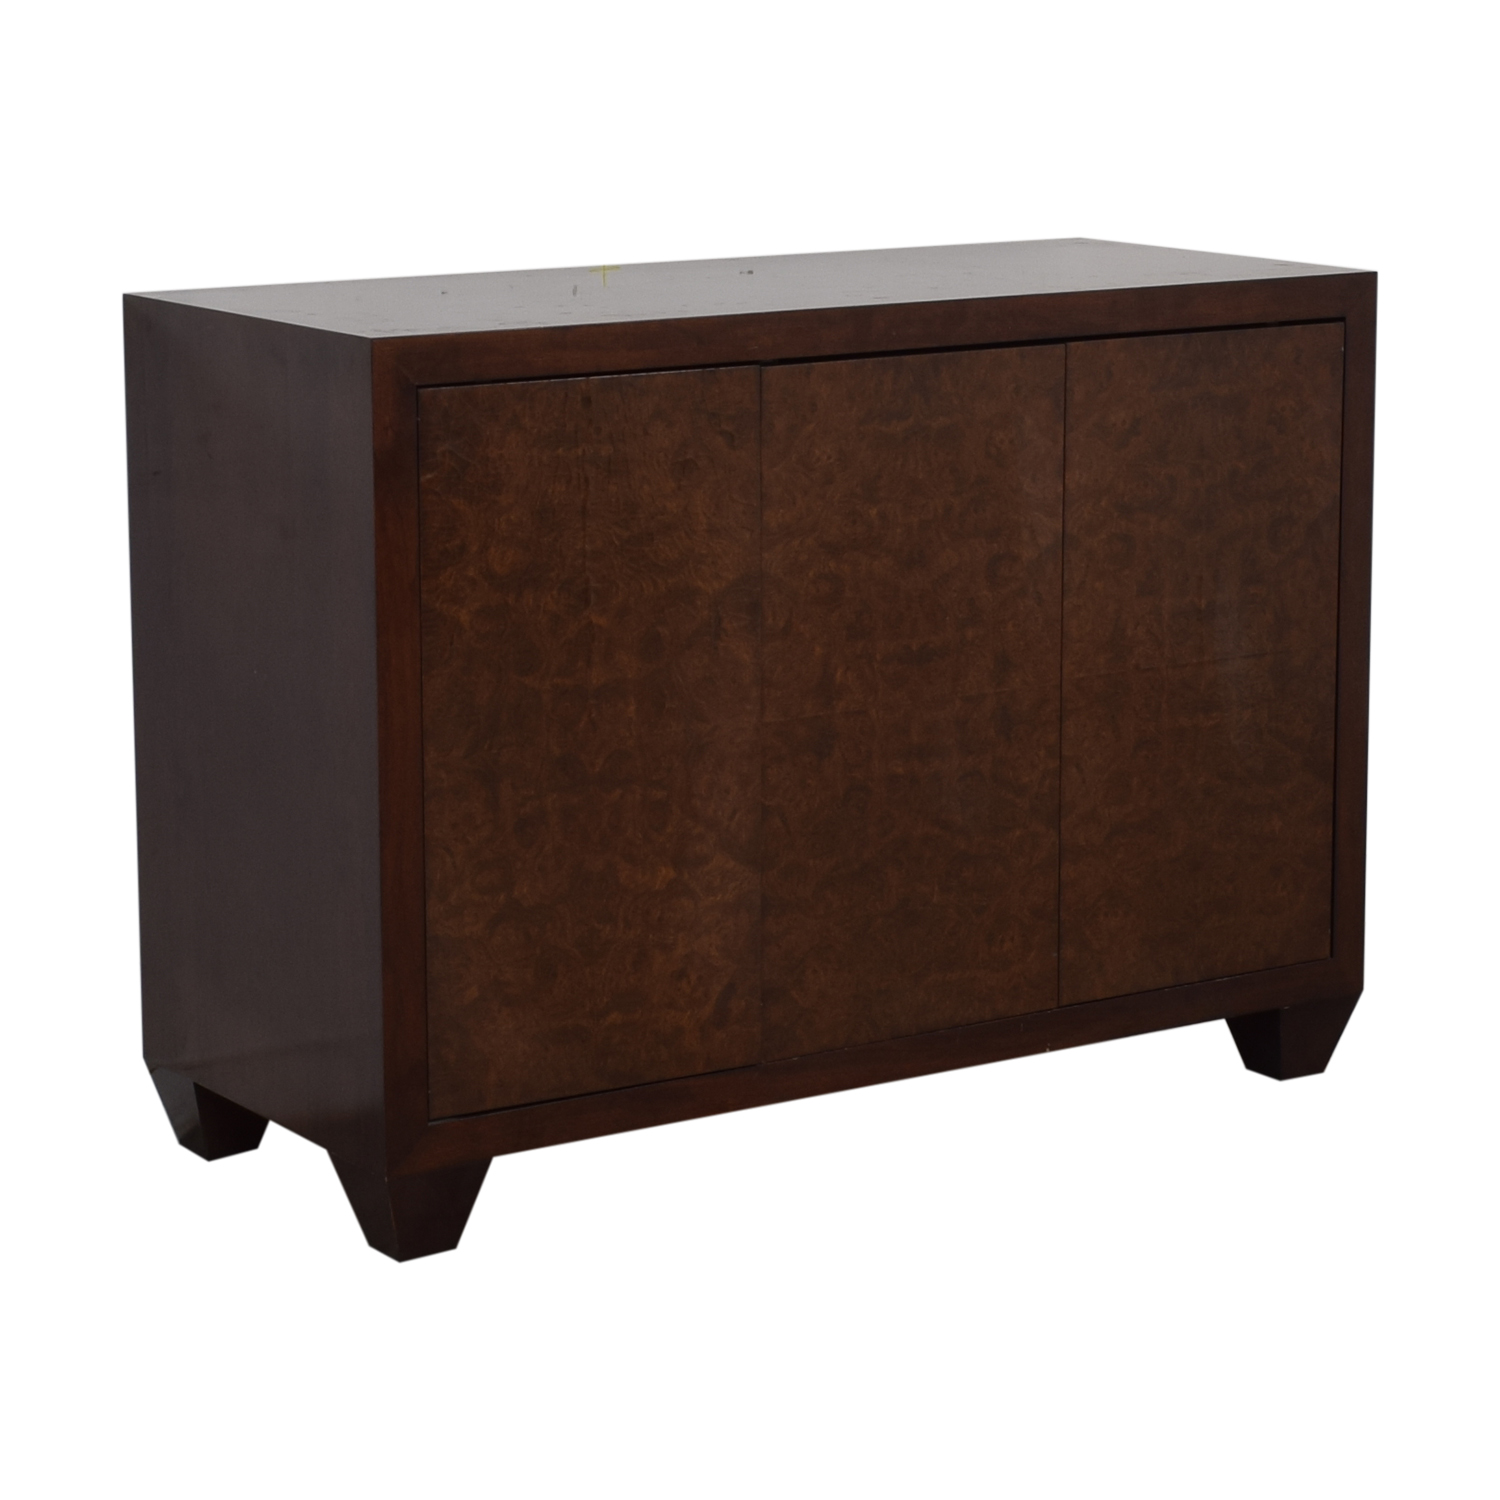 Custom Cherry Media Cabinet Cabinets & Sideboards